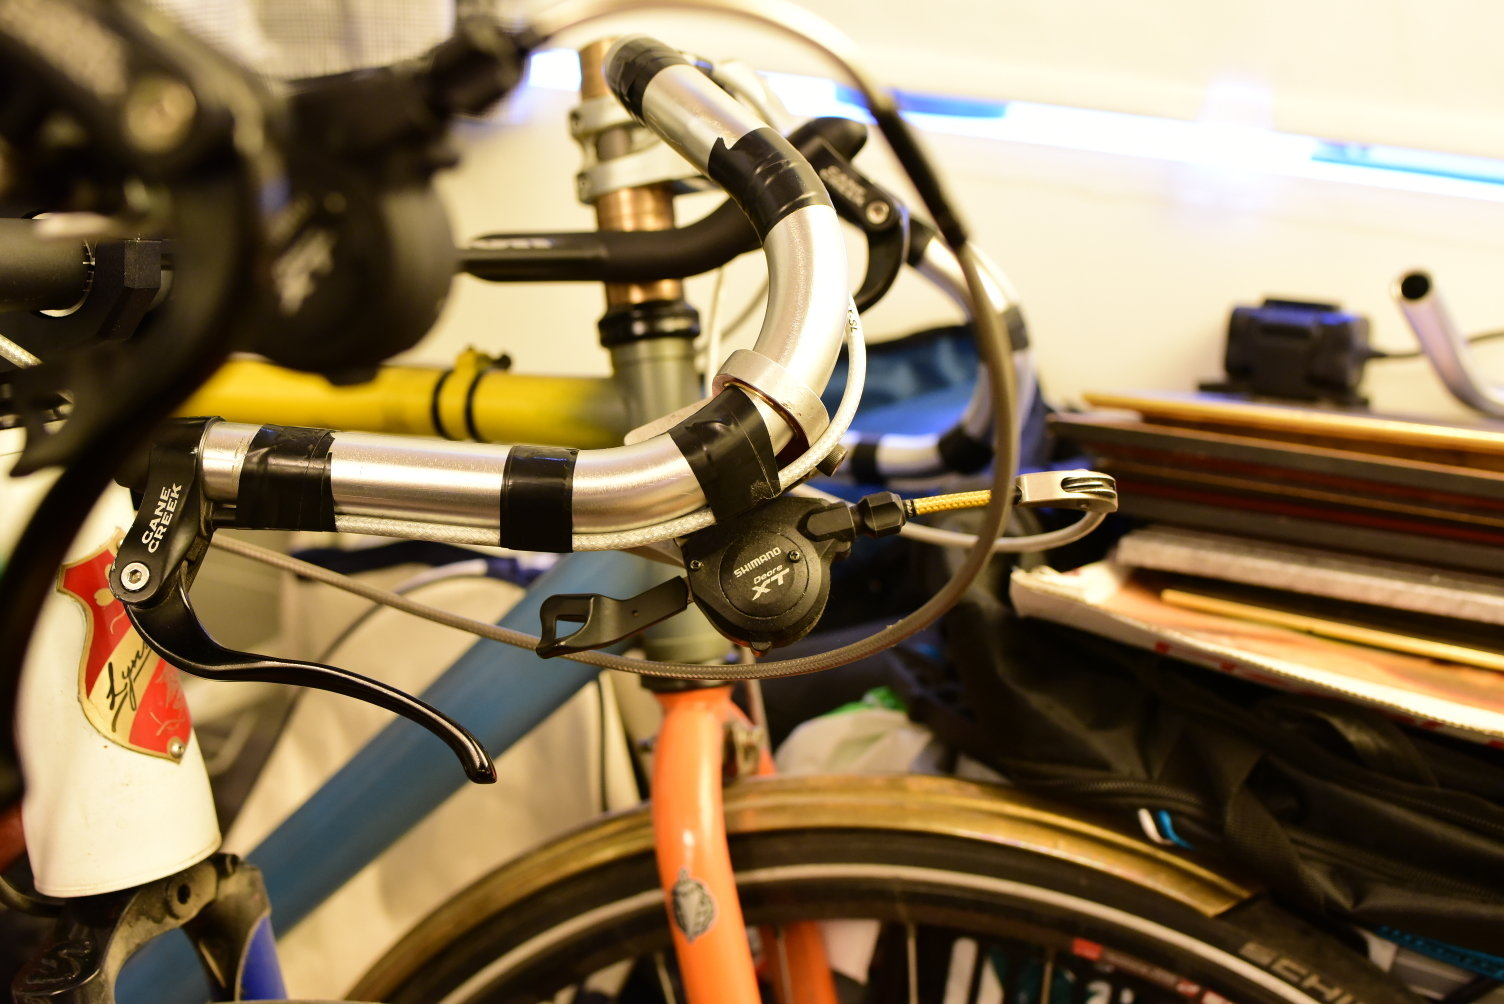 Bullhorn/shifters/brake levers - Bike Forums